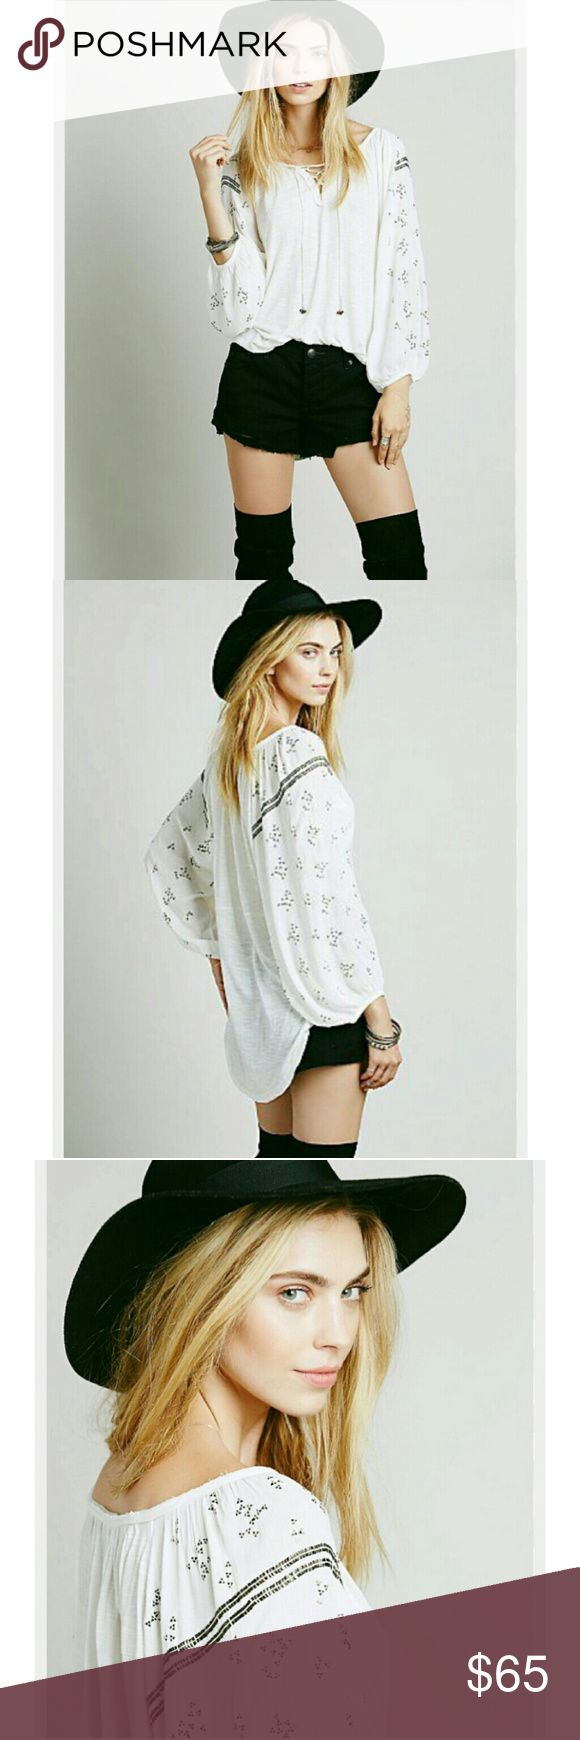 Free People Golden Nugget Peasant Top Free People Golden Nugget Peasant Top  Ivory color with silver triangle and rectangle beading embellished on shoulders. Lace-Up drawstring front neckline, Drawstrings feature wire wrapped bottoms with trio tiny jingle bells attached. Hi-Low style looks so cute as a tunic or top, even tucked into shorts.  Absolutely beautiful detailing on this top down to tinyest details. All embellishments are secured, blouse has no signs wear or damage in excellent…